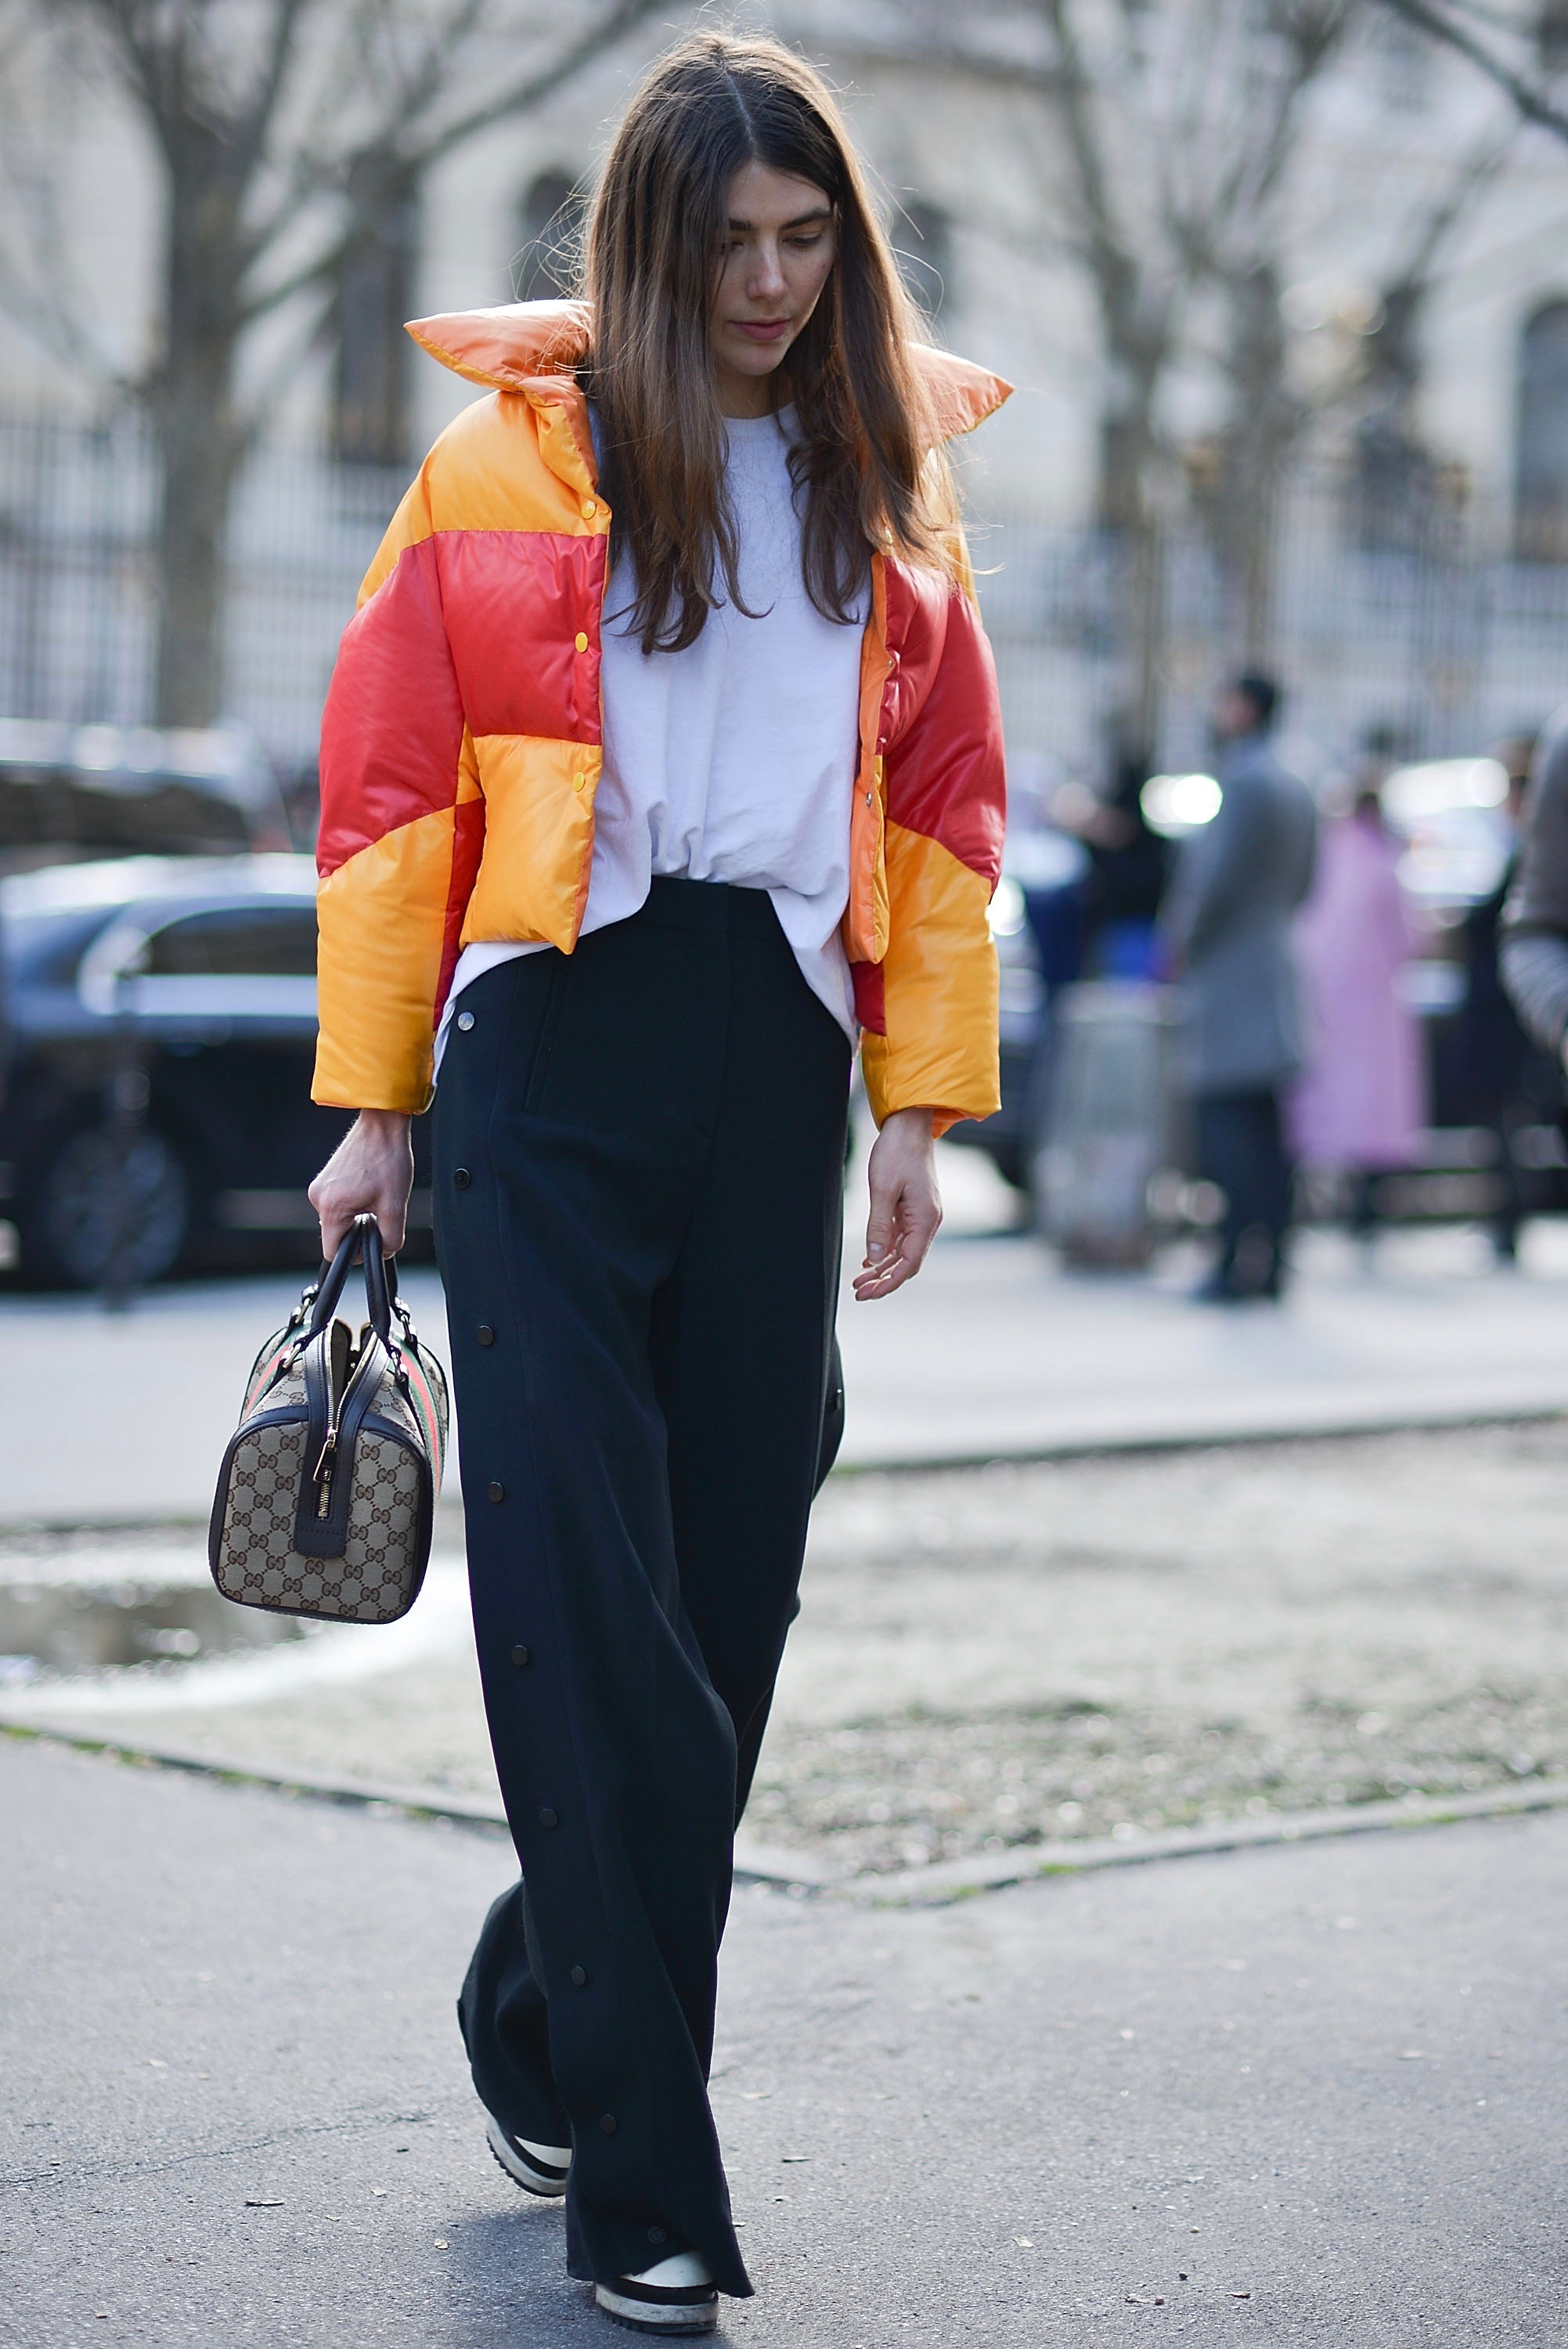 407c20a8256f The 17 Street Style Stars to Follow During Fashion Week - theFashionSpot